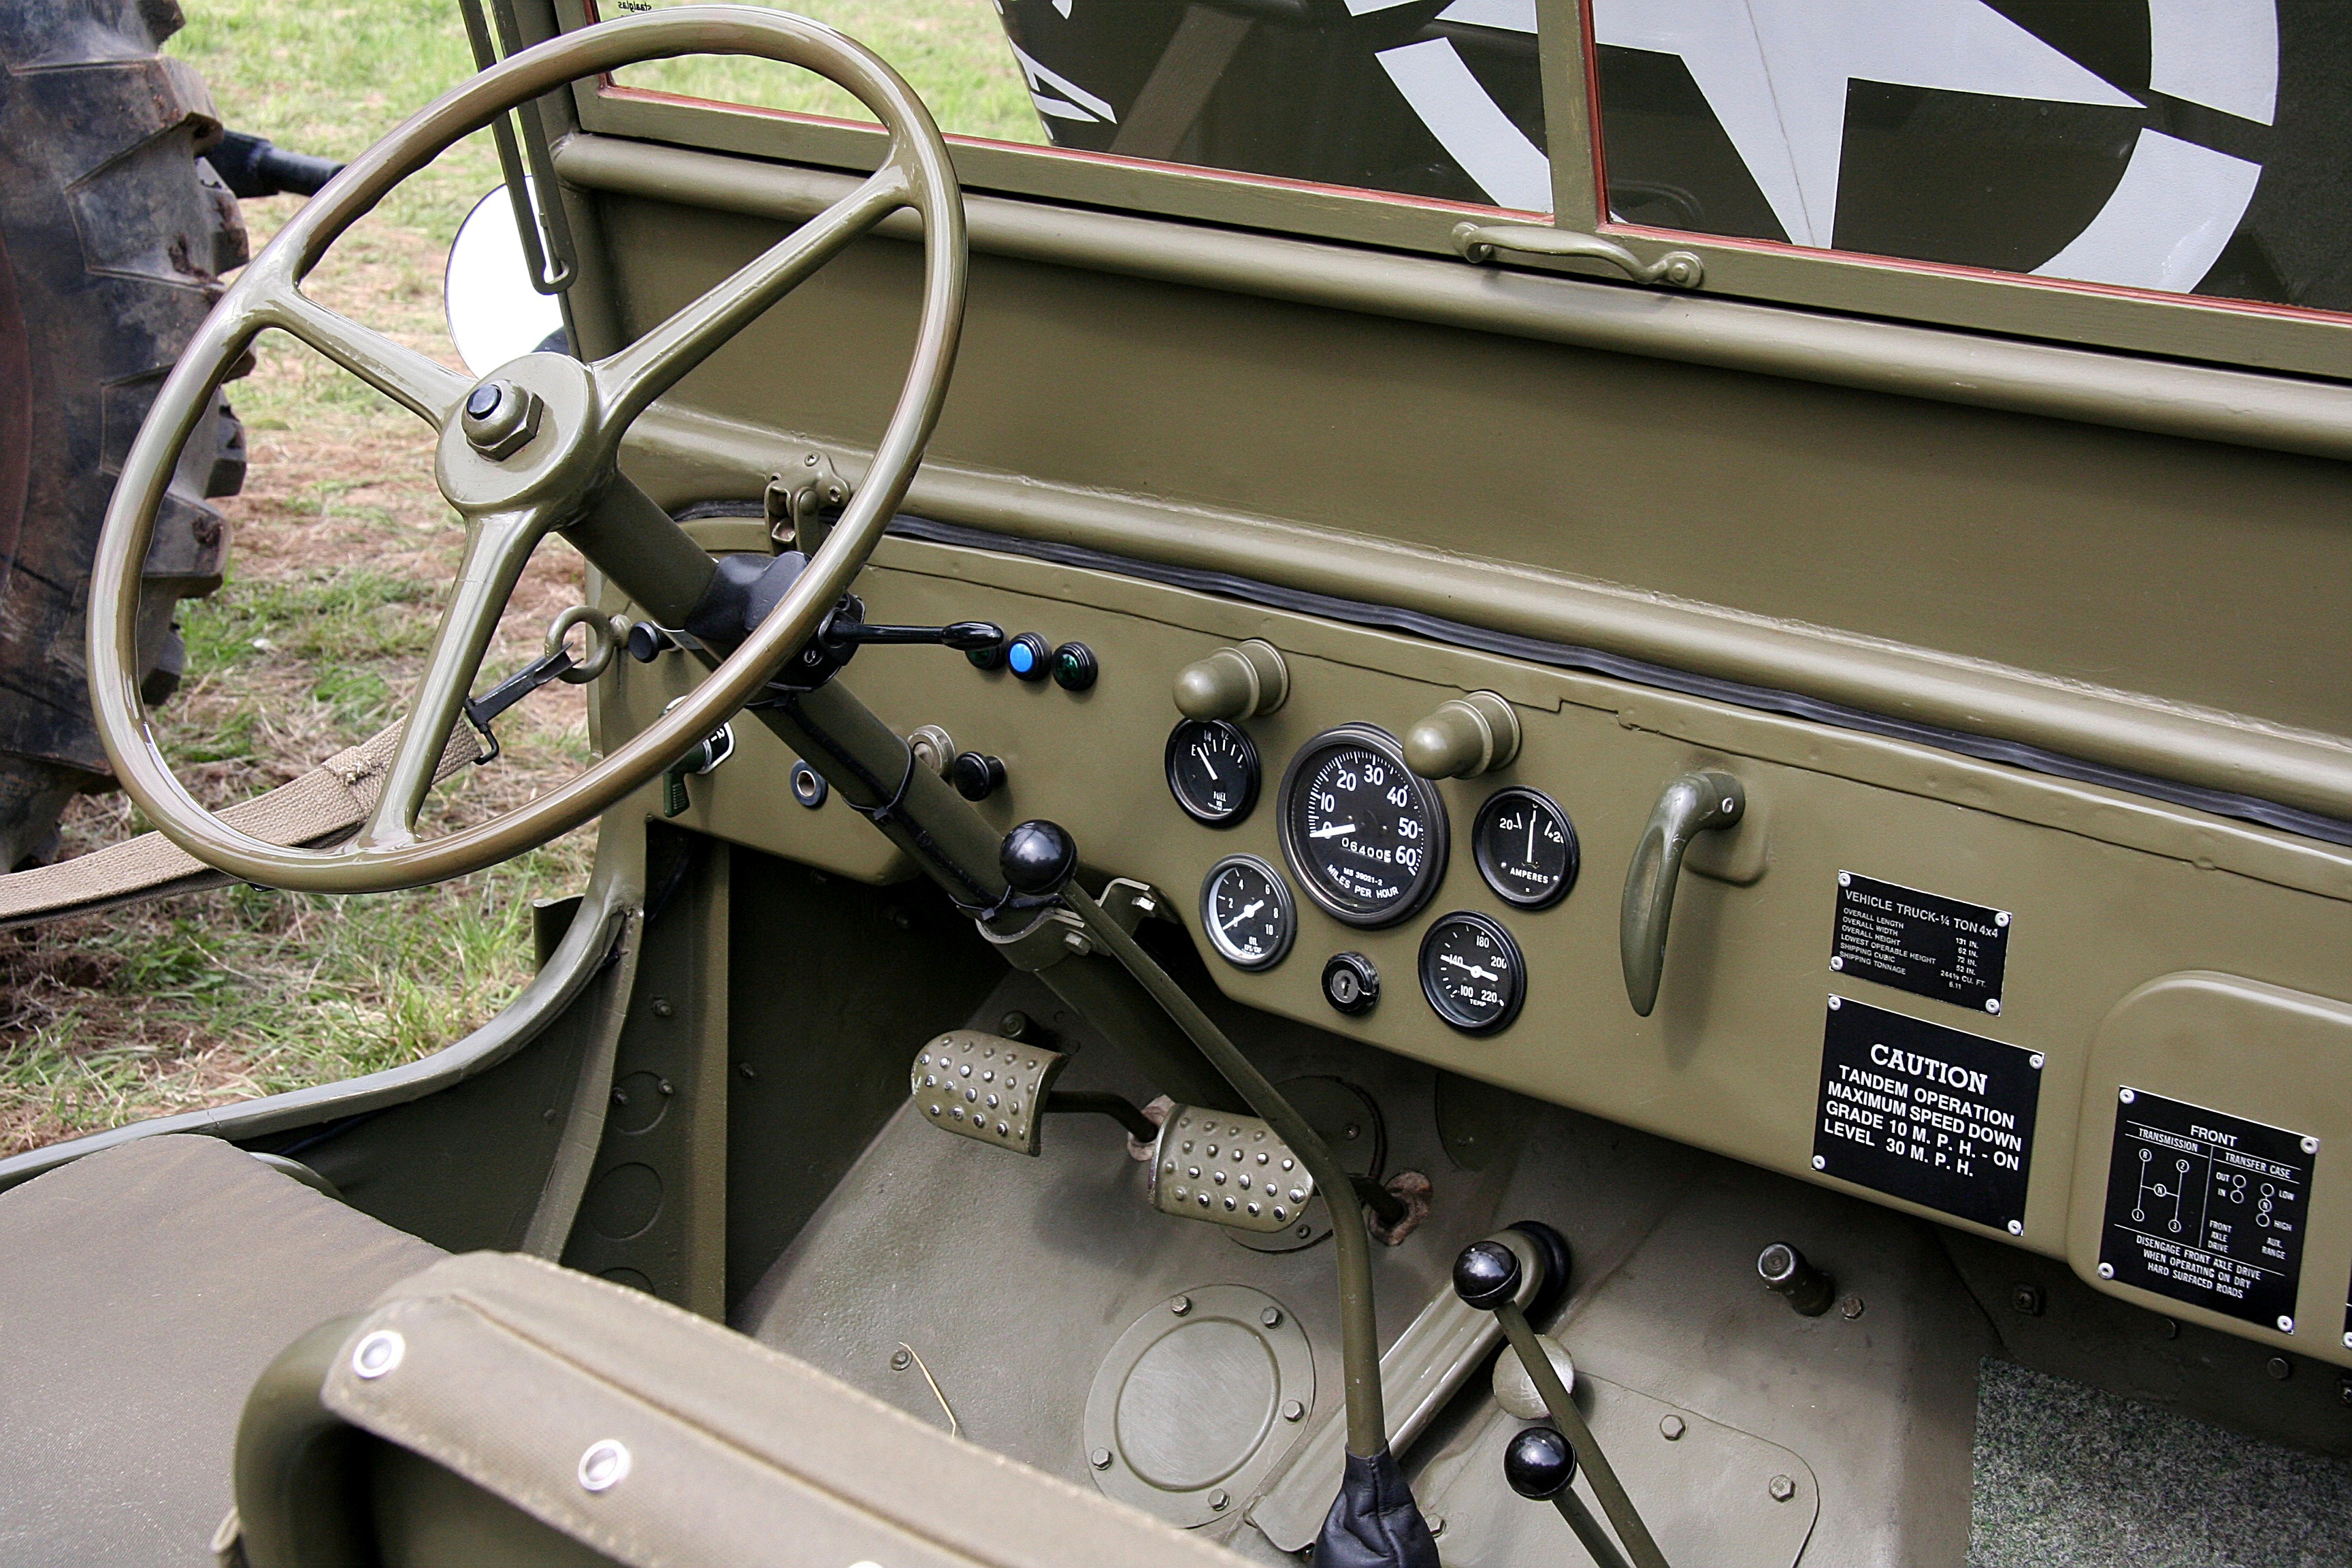 Willys_MB_%28Bild_4_2008-06-14%29_innen.